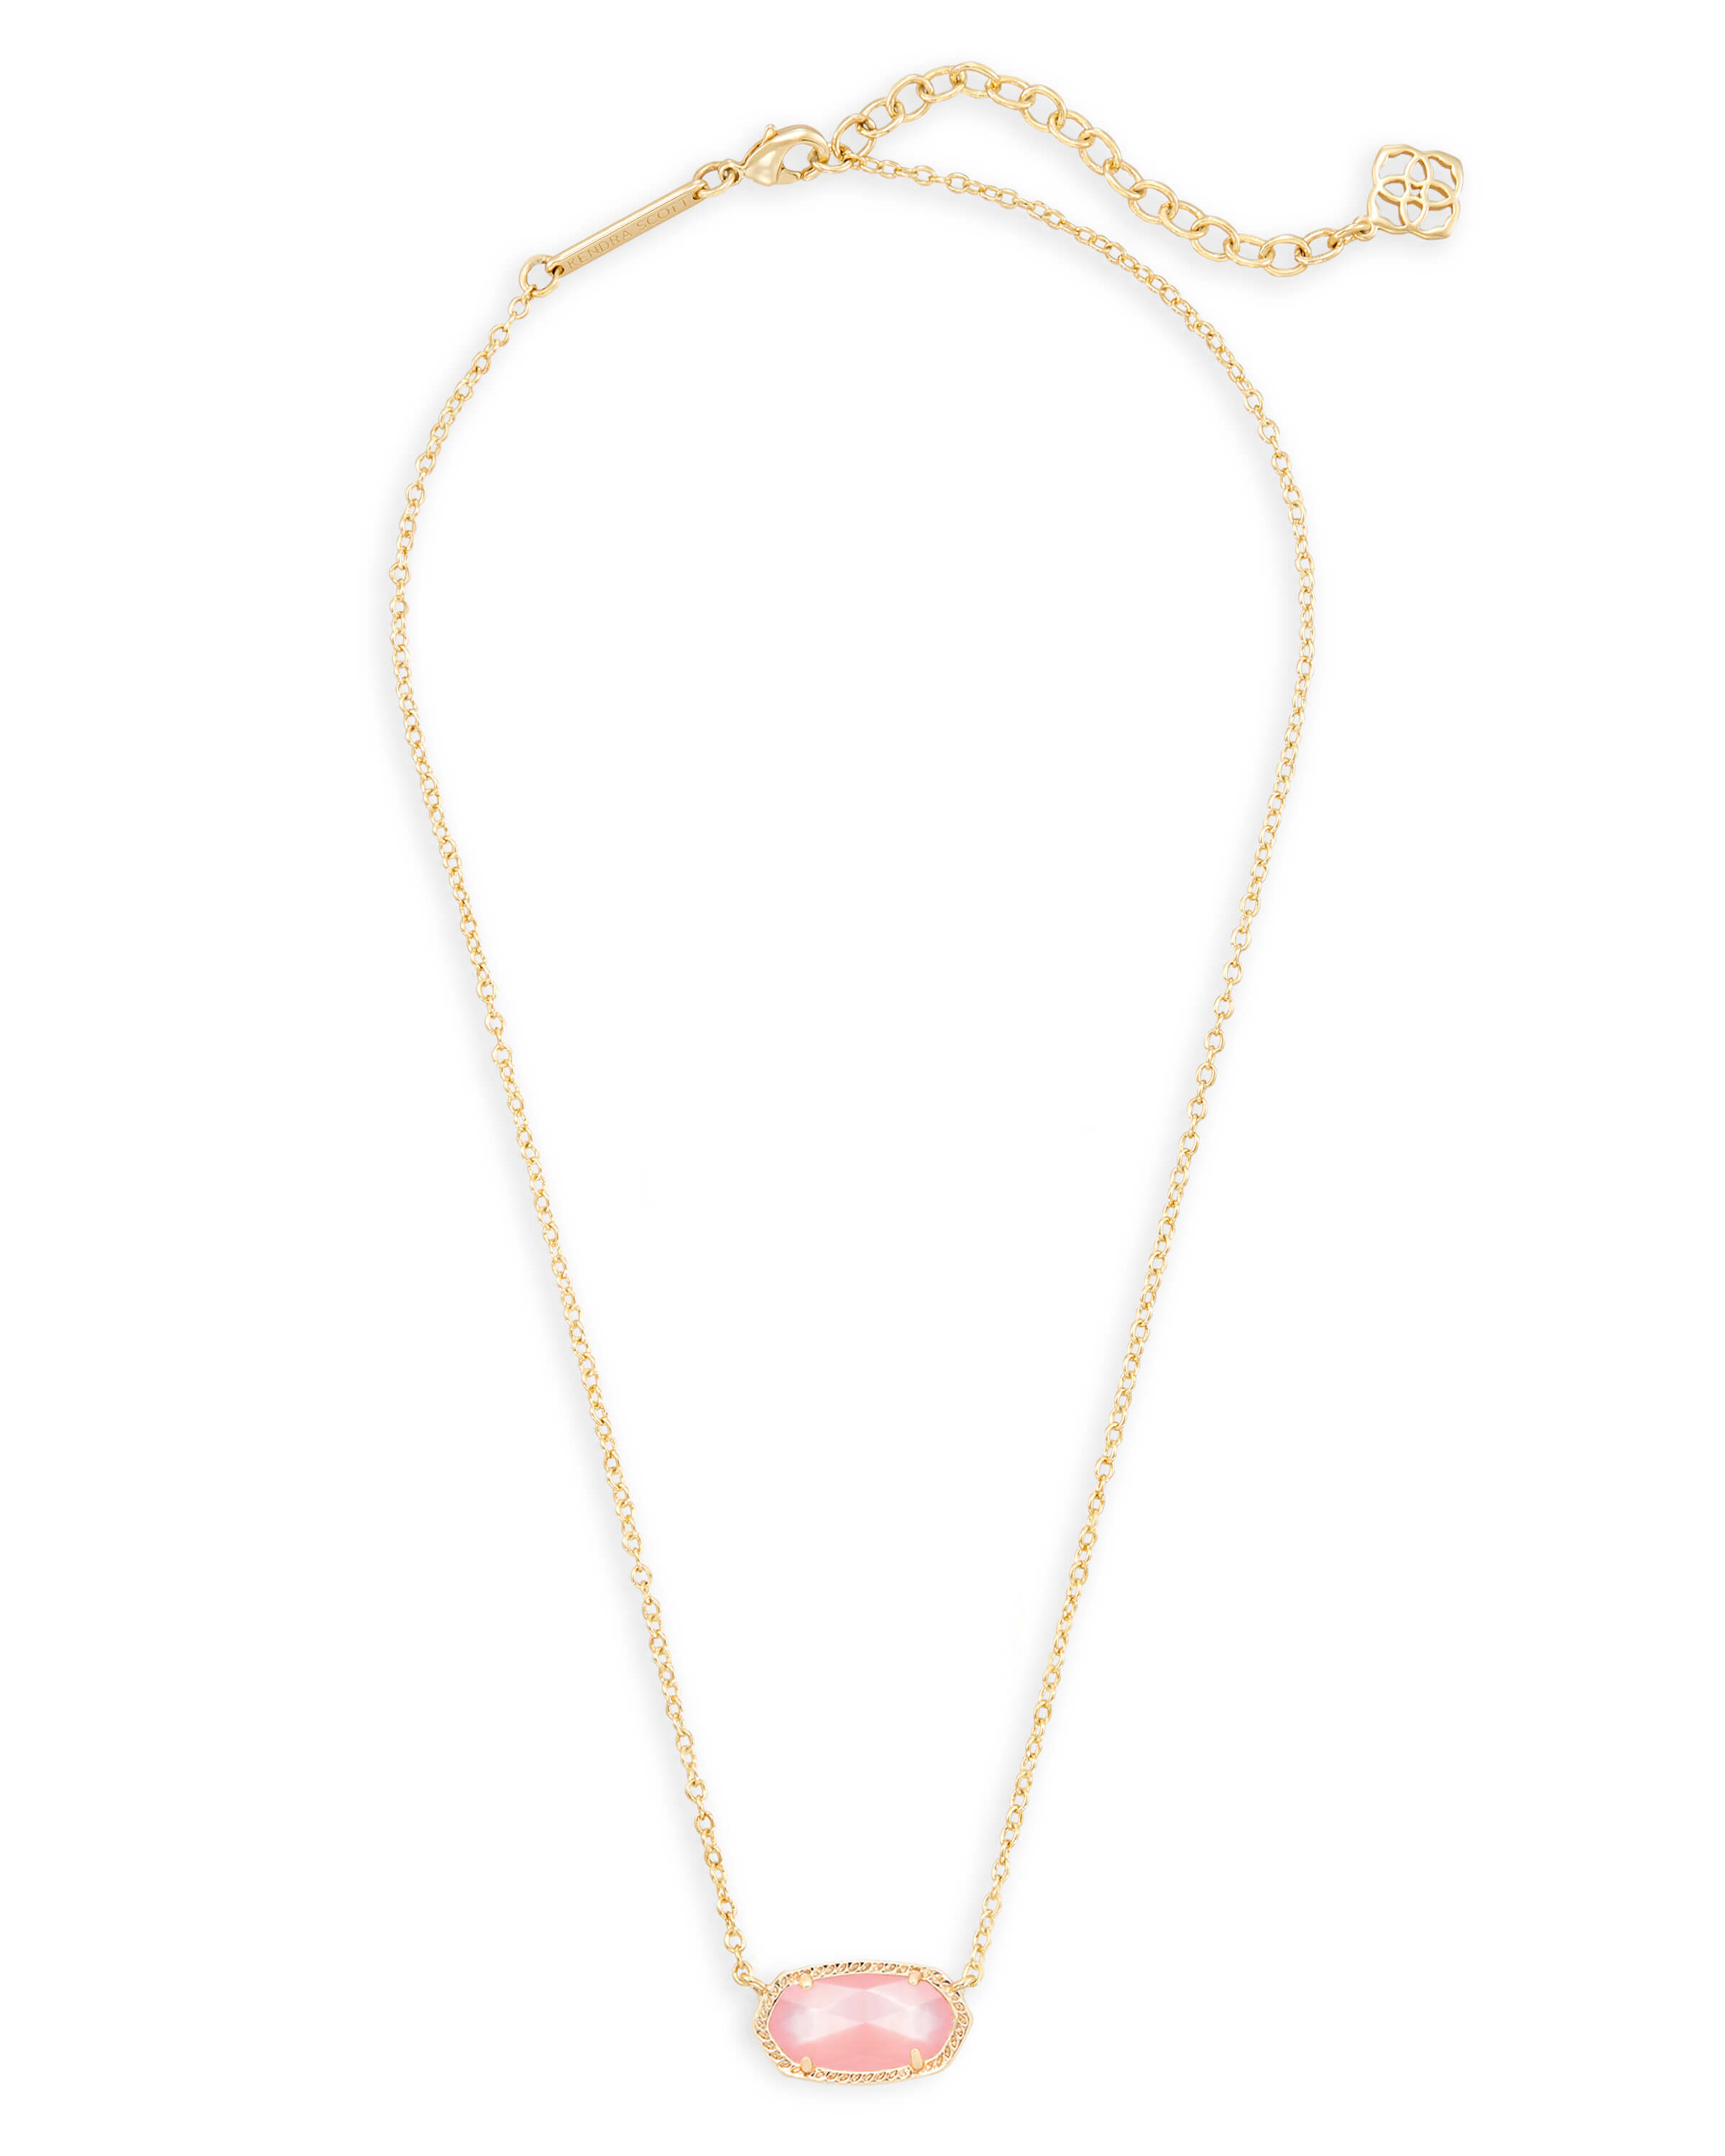 Elisa Gold Pendant Necklace in Peach Pearl